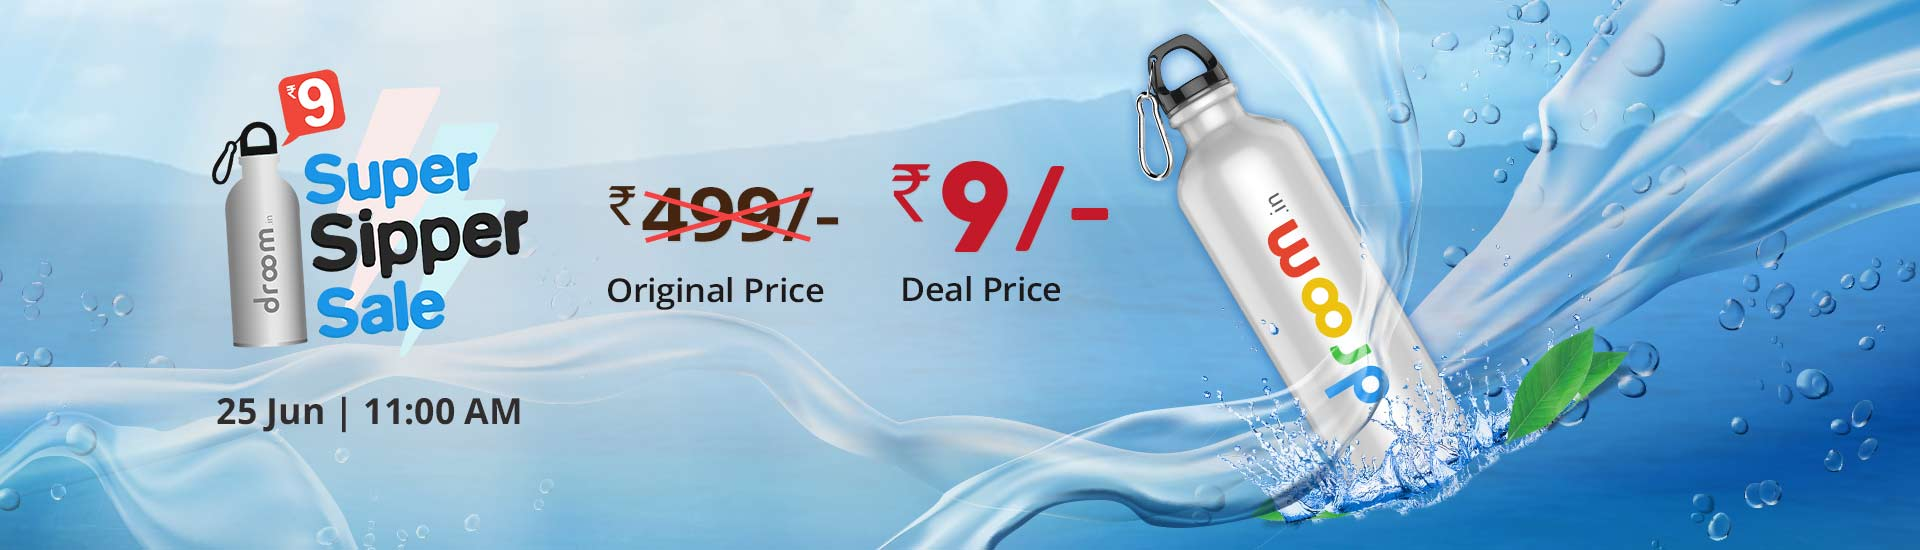 Super Sipper Sale India